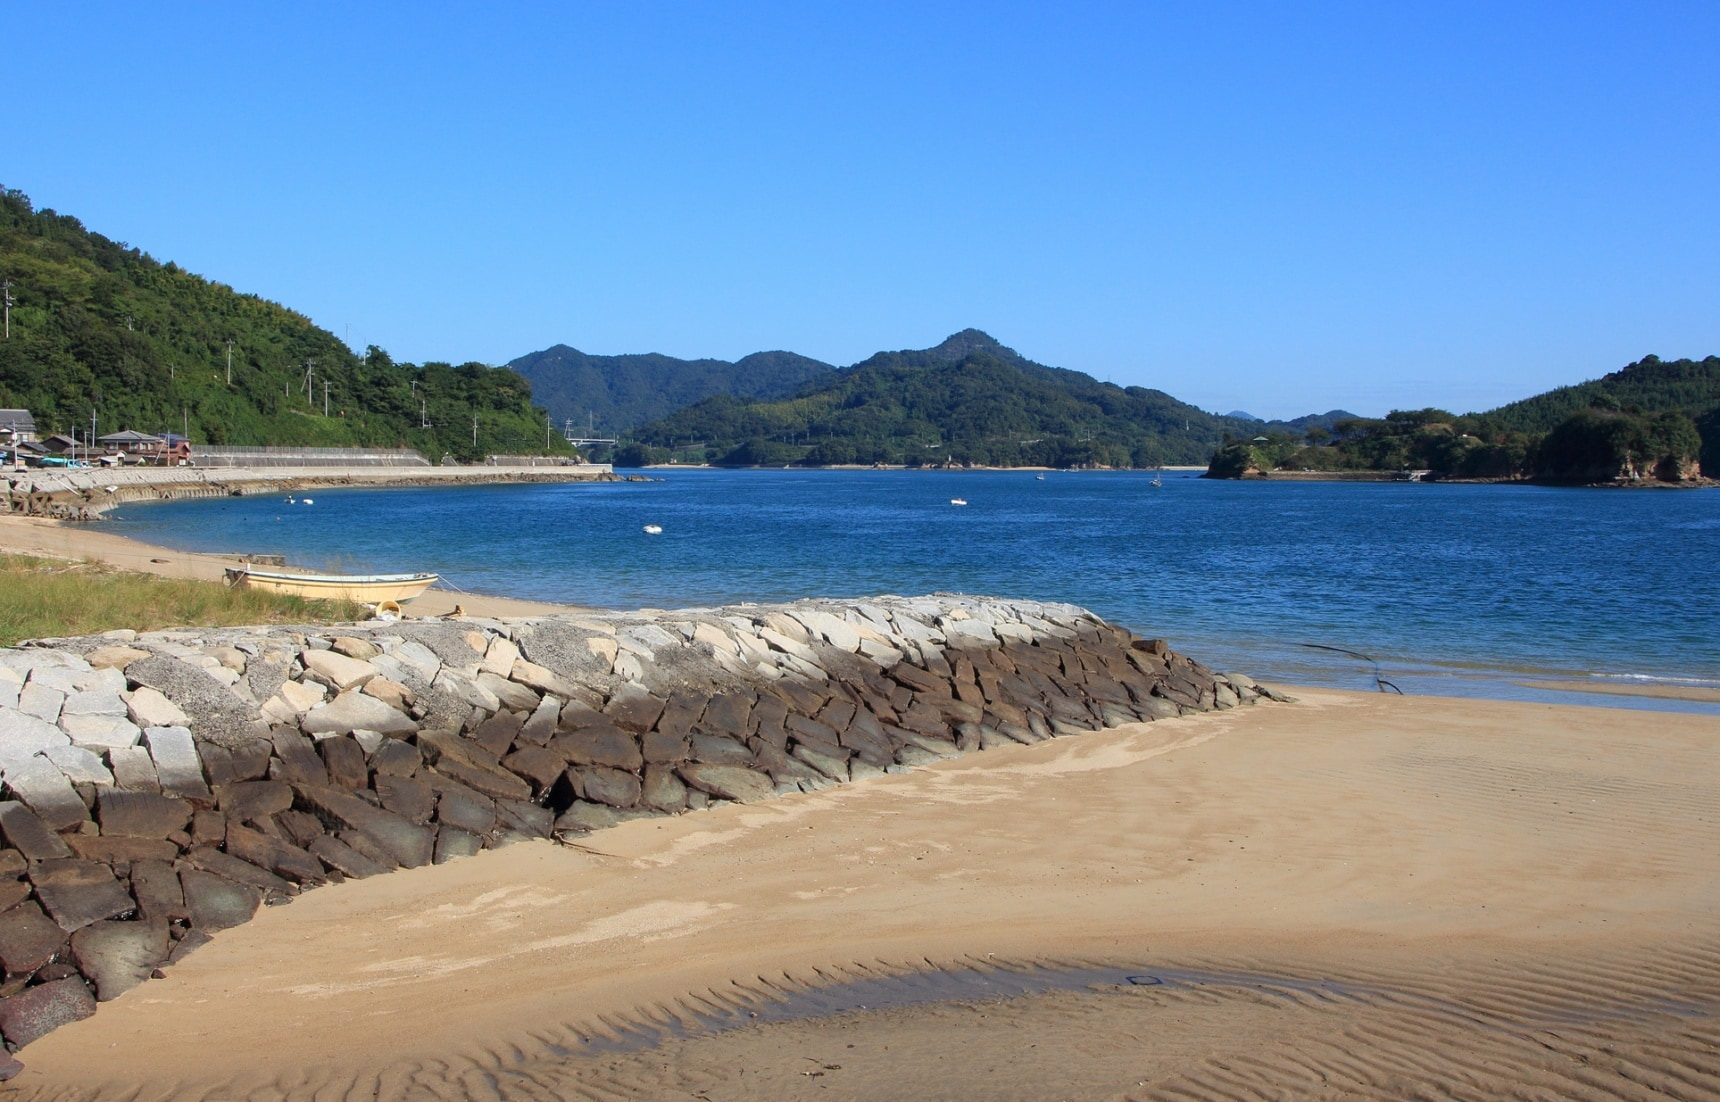 Cycle to the Hidden Beaches of Shimanami Kaido